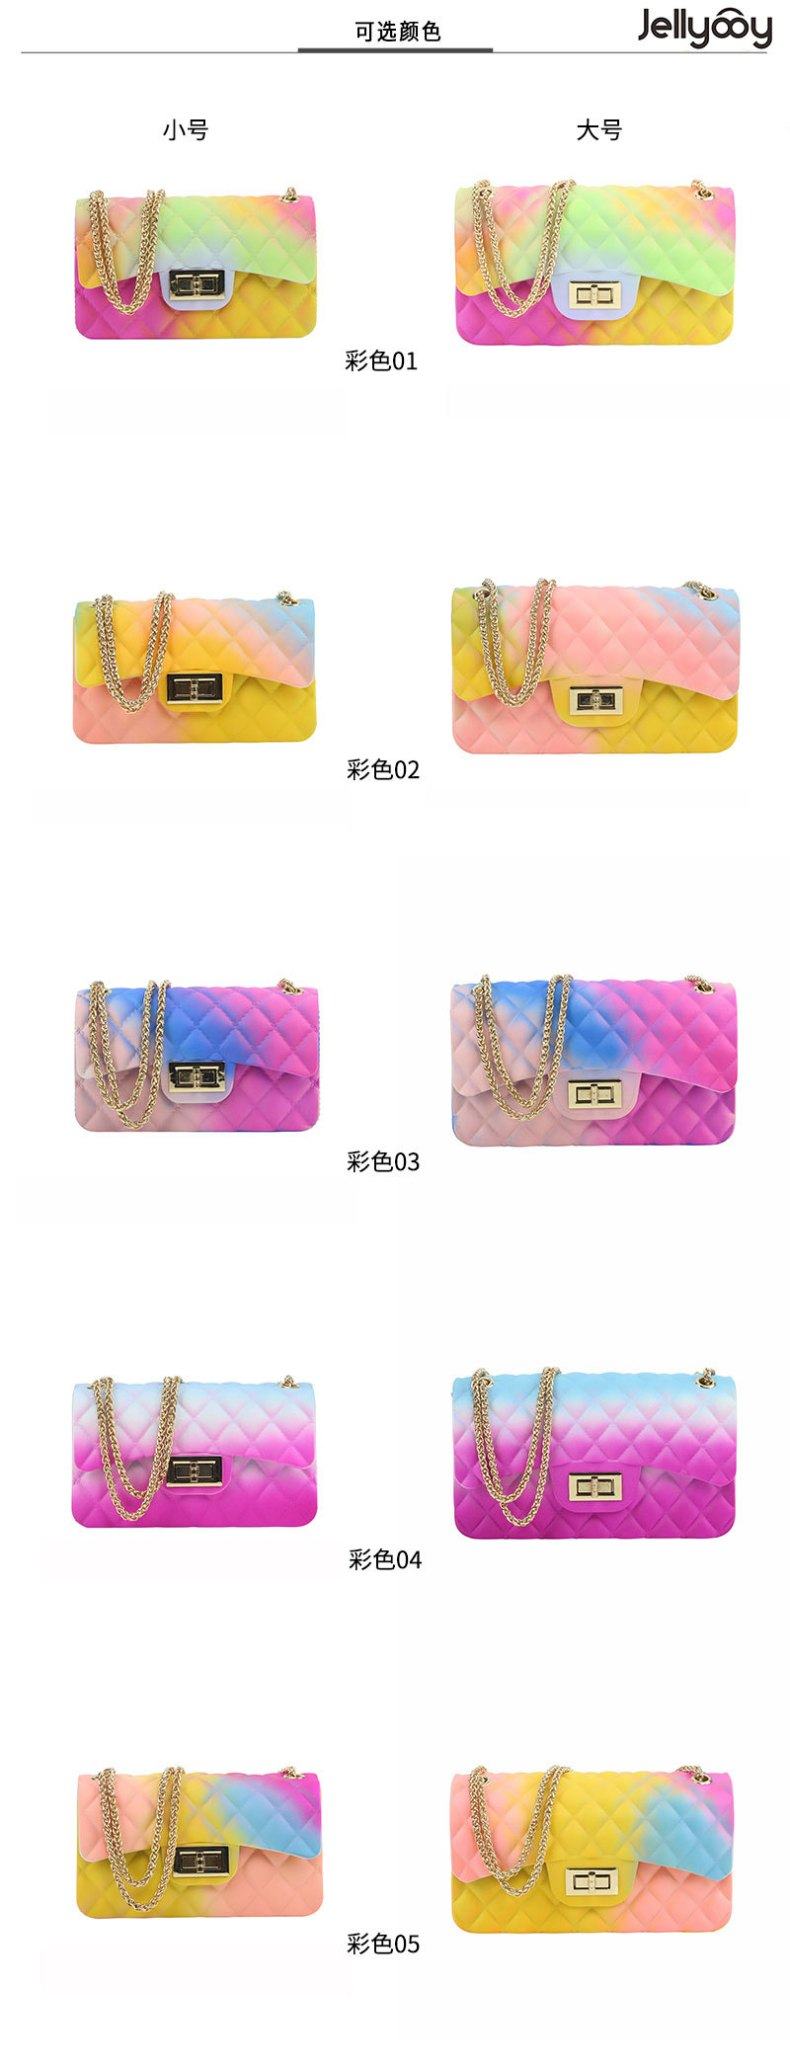 Jellyooy-Beachkins-Official flagship store-Product details page